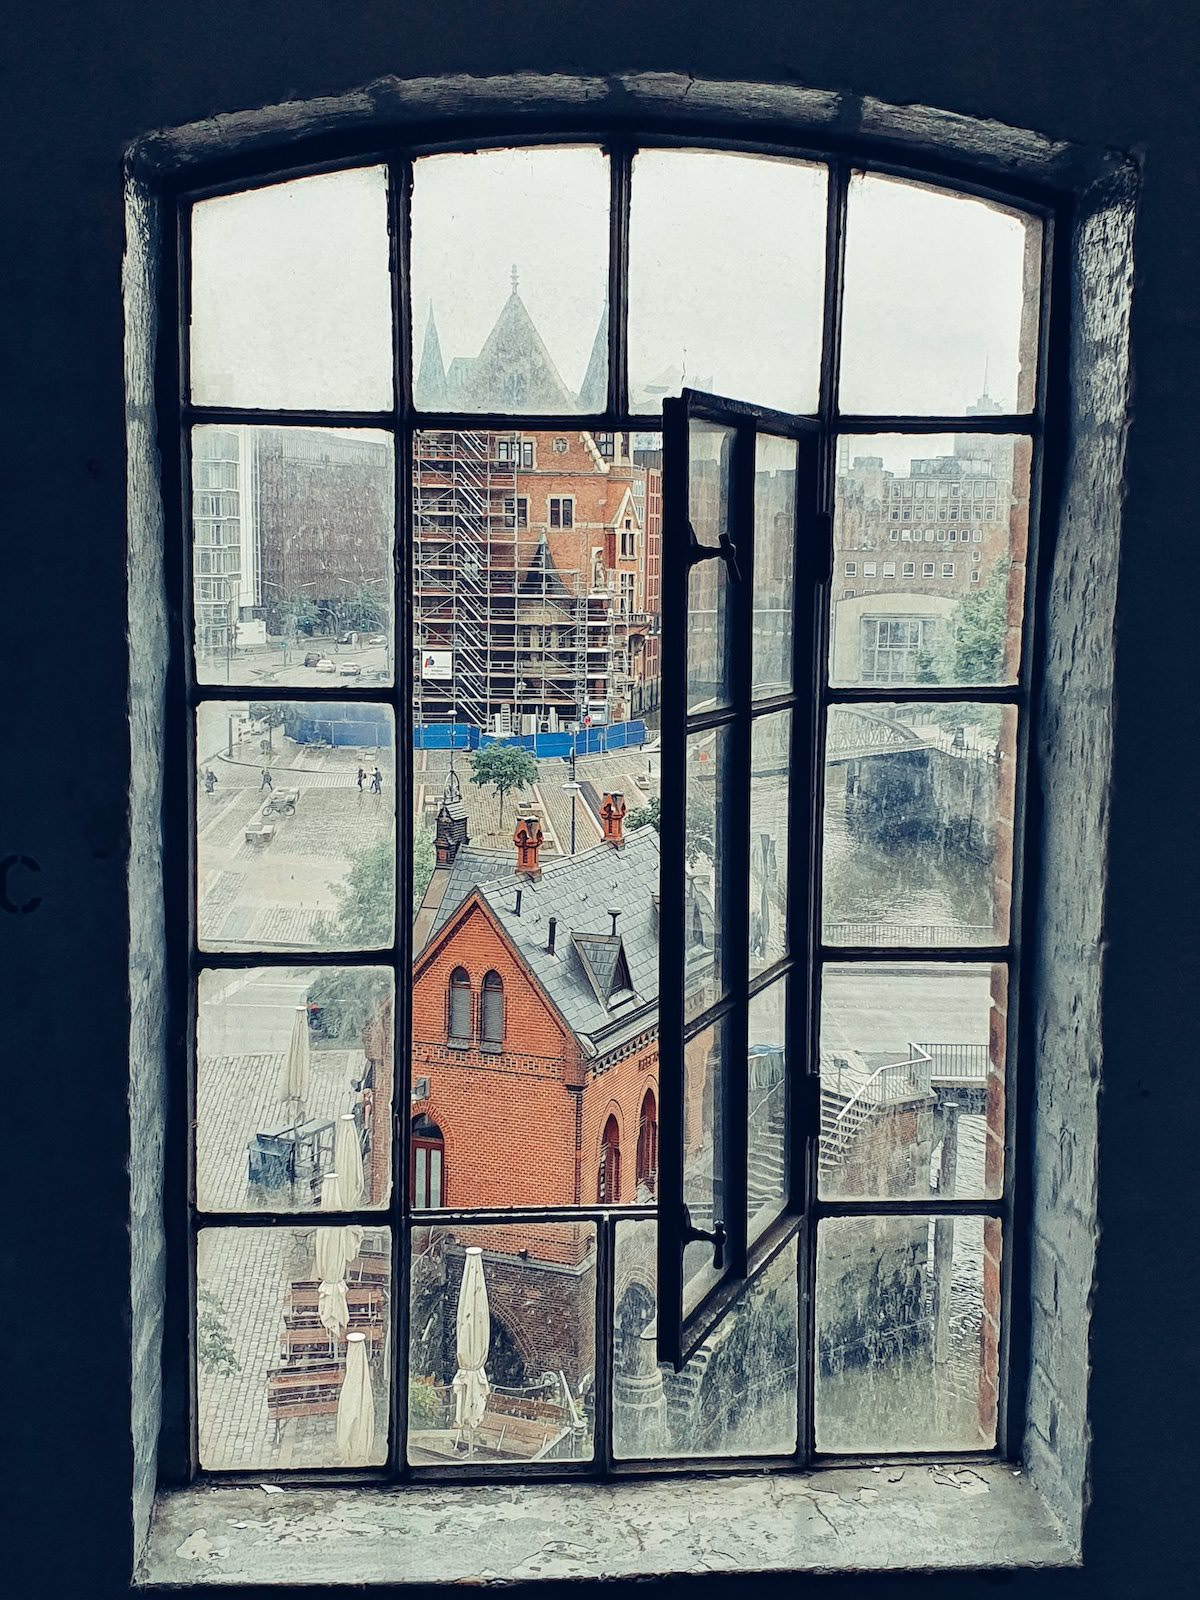 The Speicherstadt window